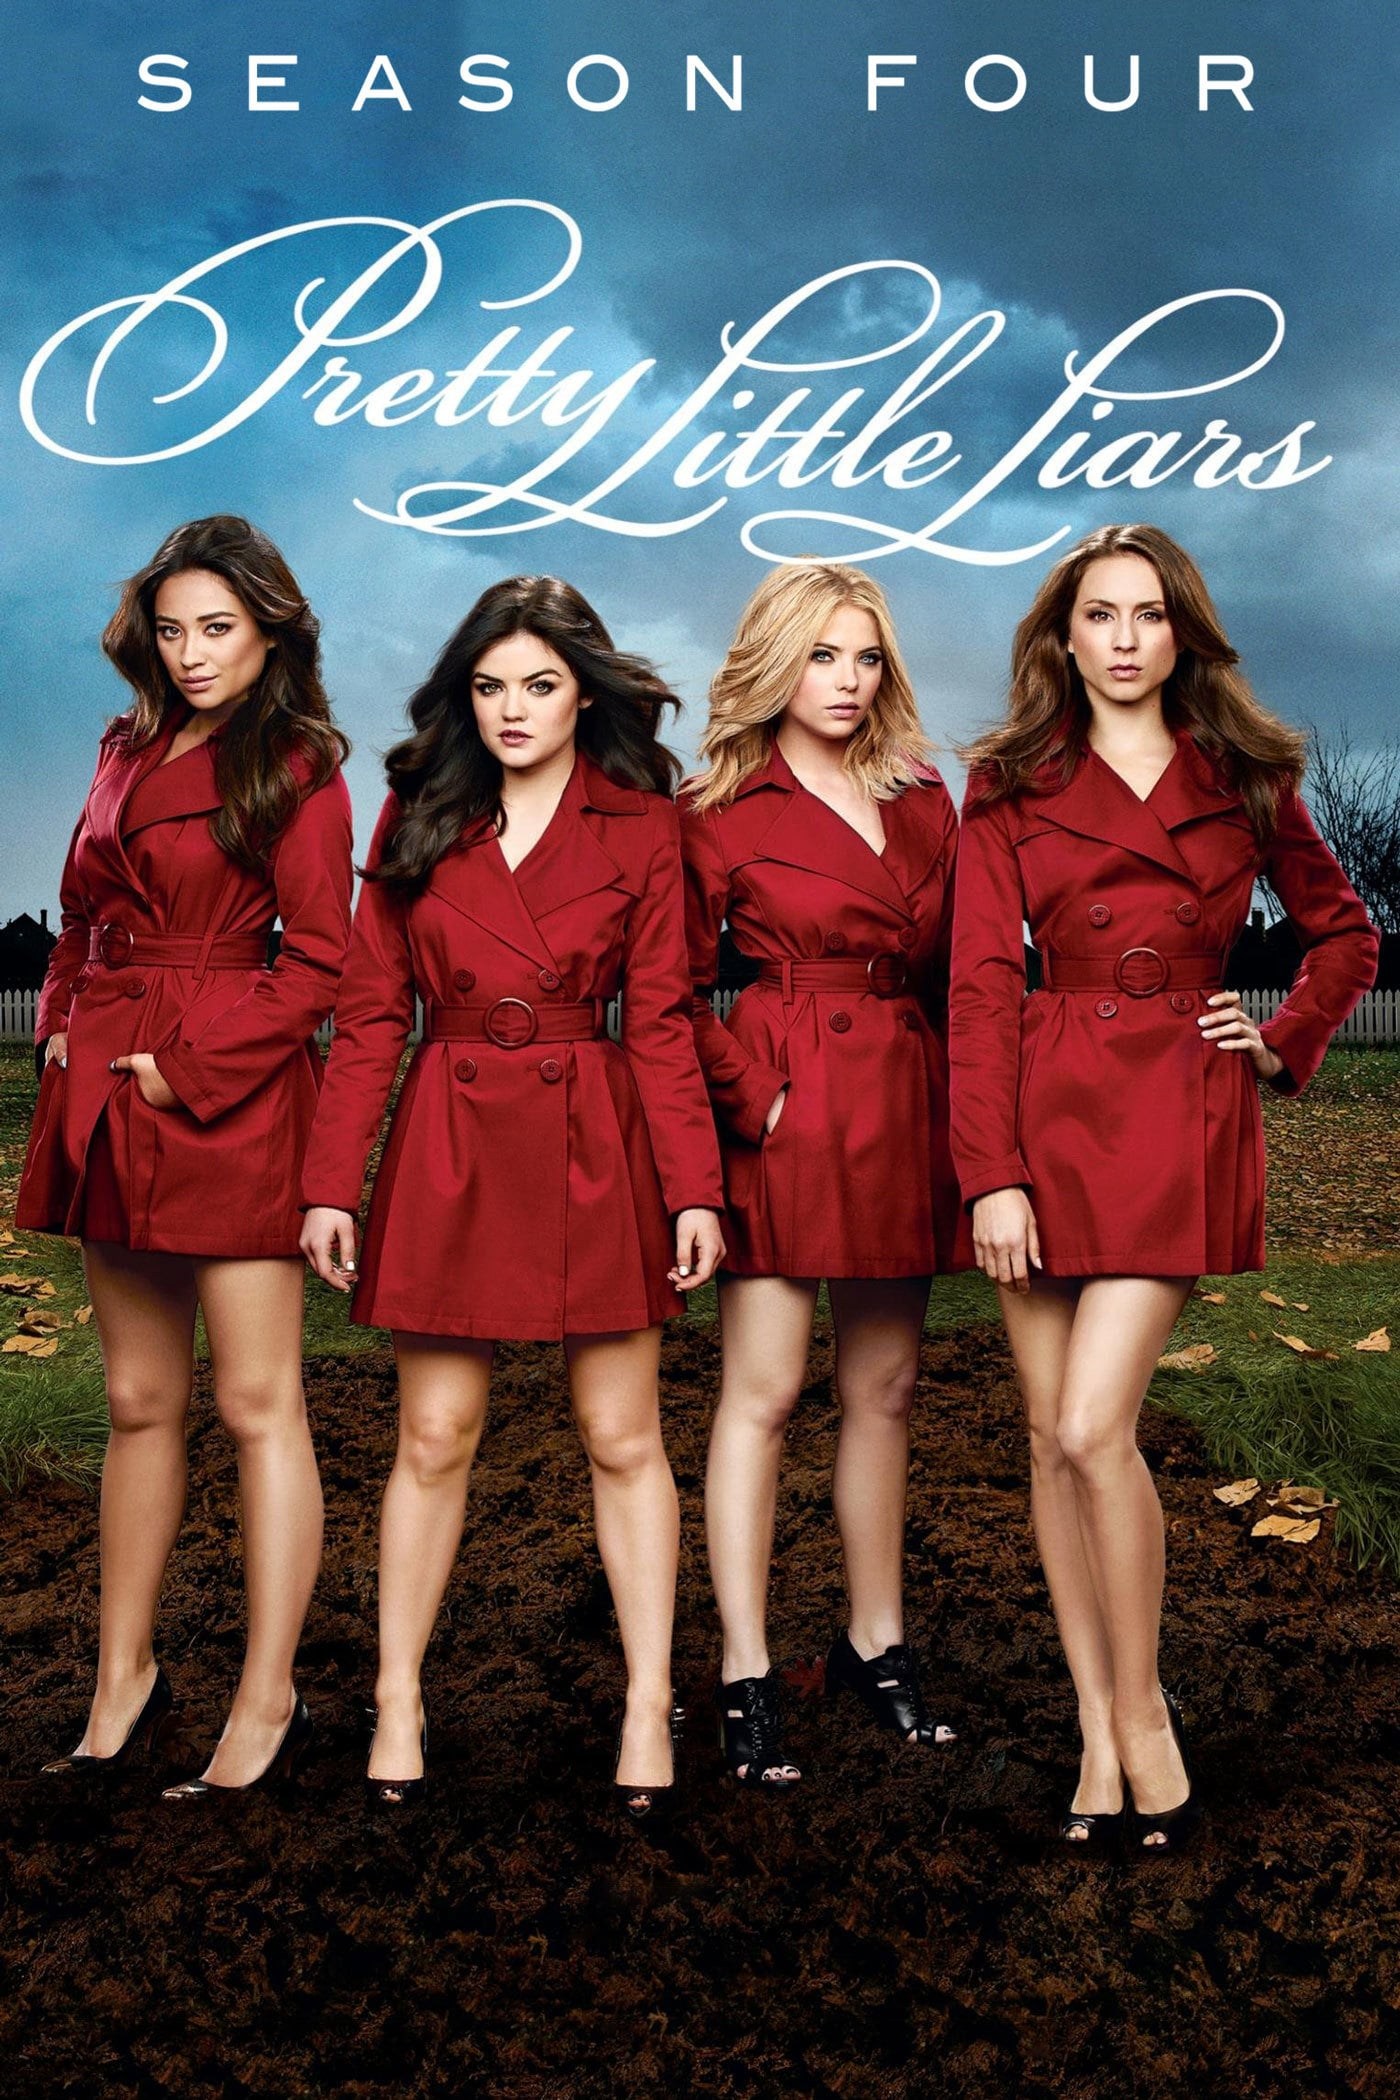 Pretty Little Liars Season 4 Episode 20: Free Fall